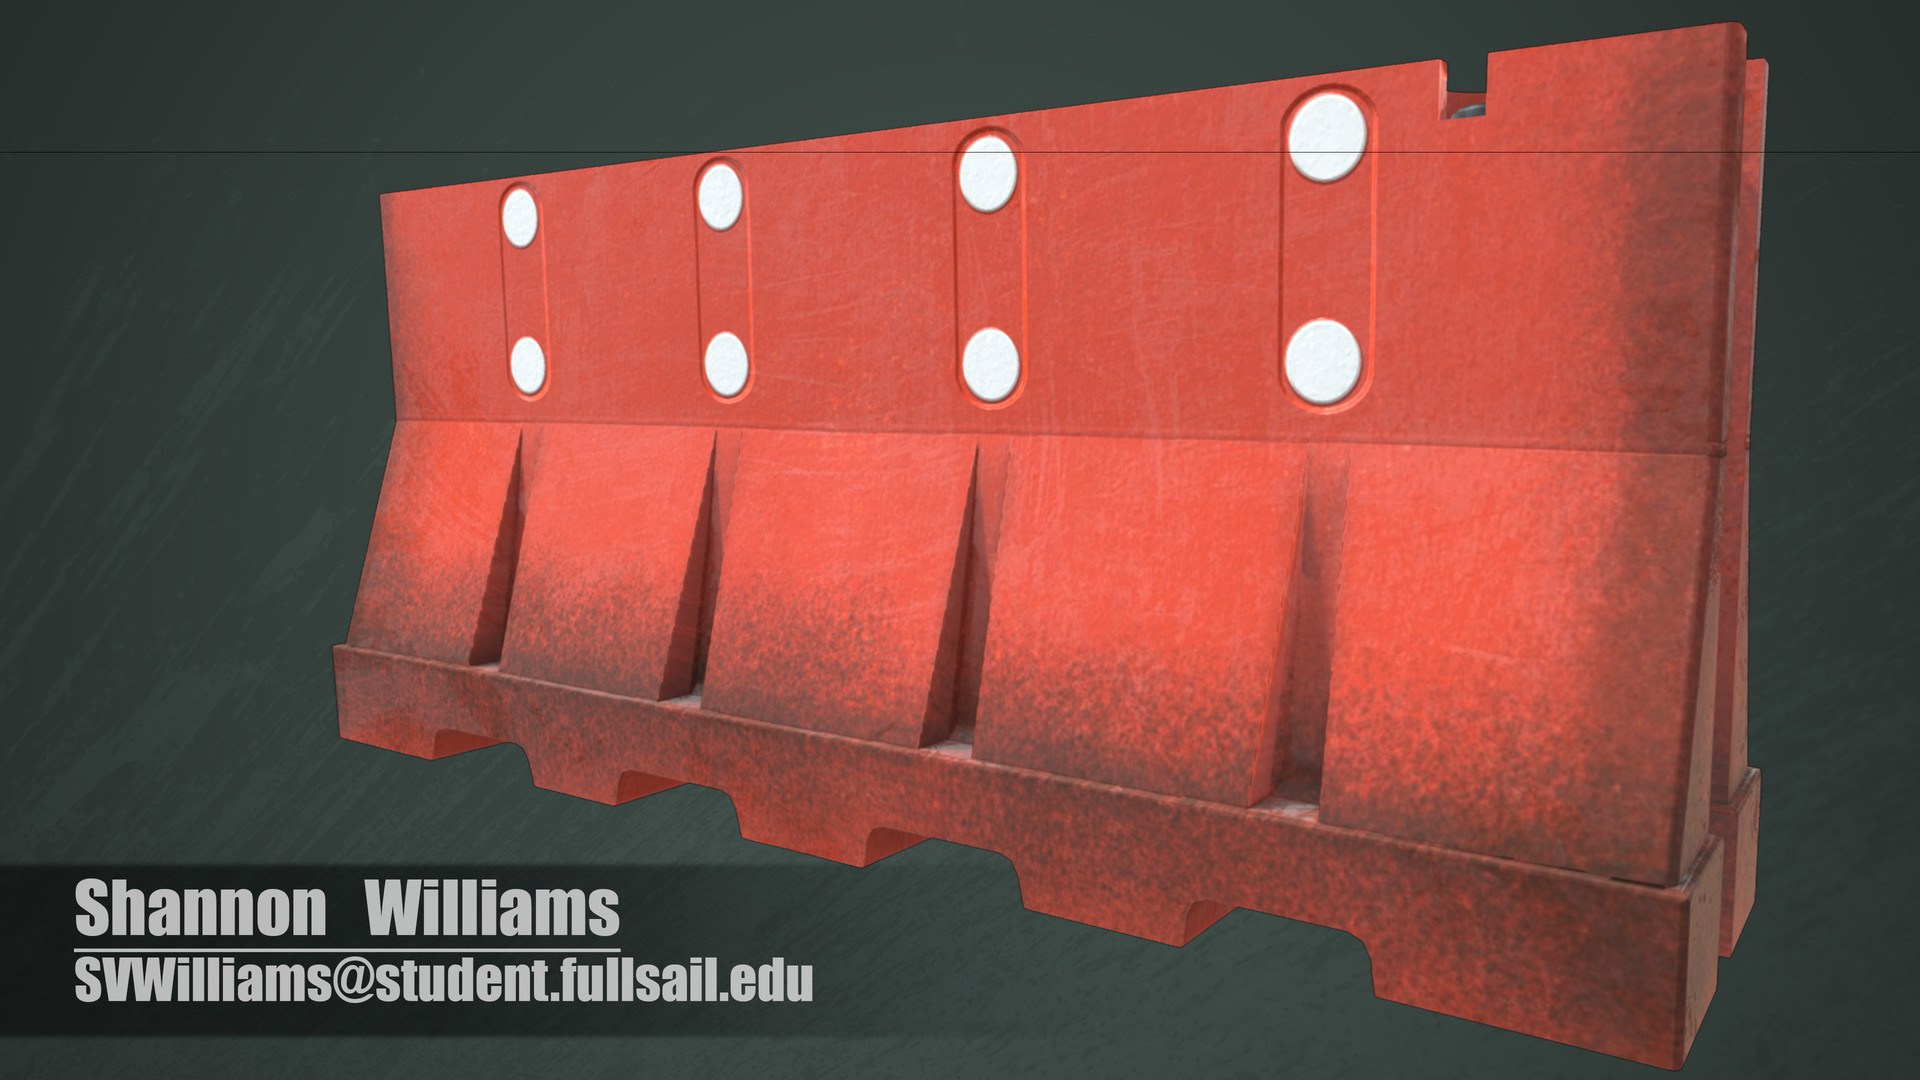 The model is fully textured now. I took elements of each reference to develop this rendition of the object.